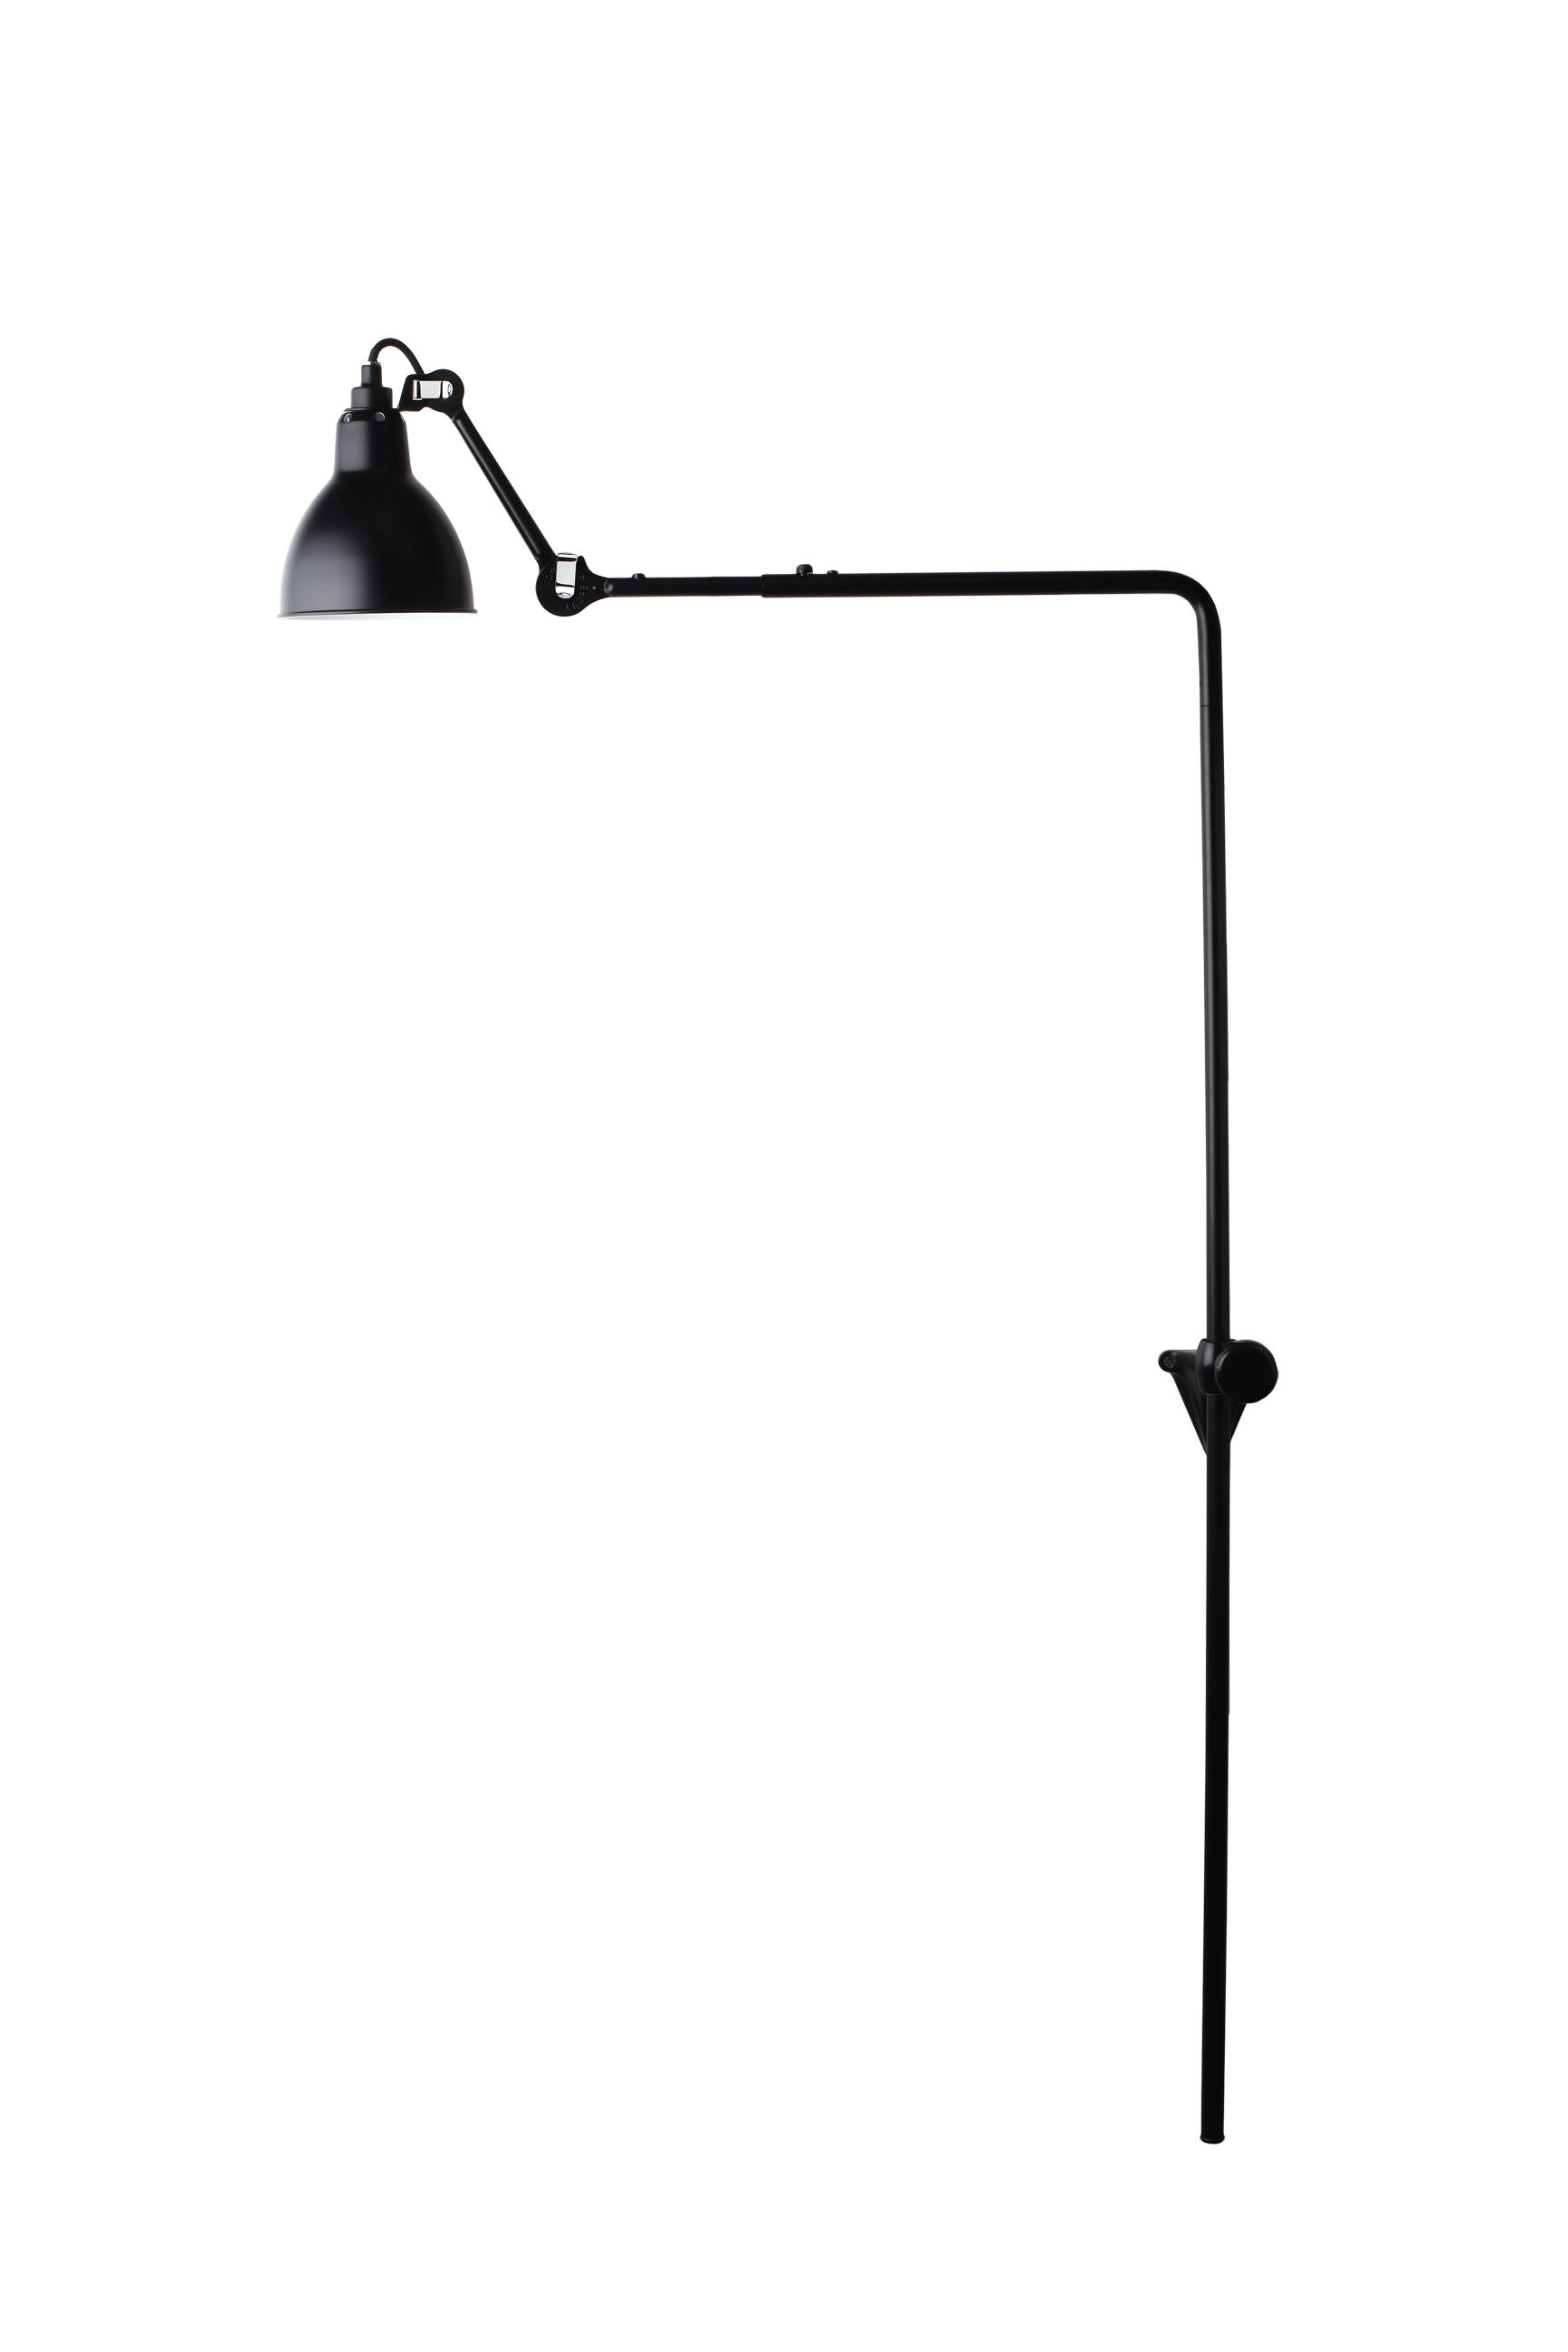 Lighting - Wall Lights - N°216 Wall light by DCW éditions - Black satin - Steel